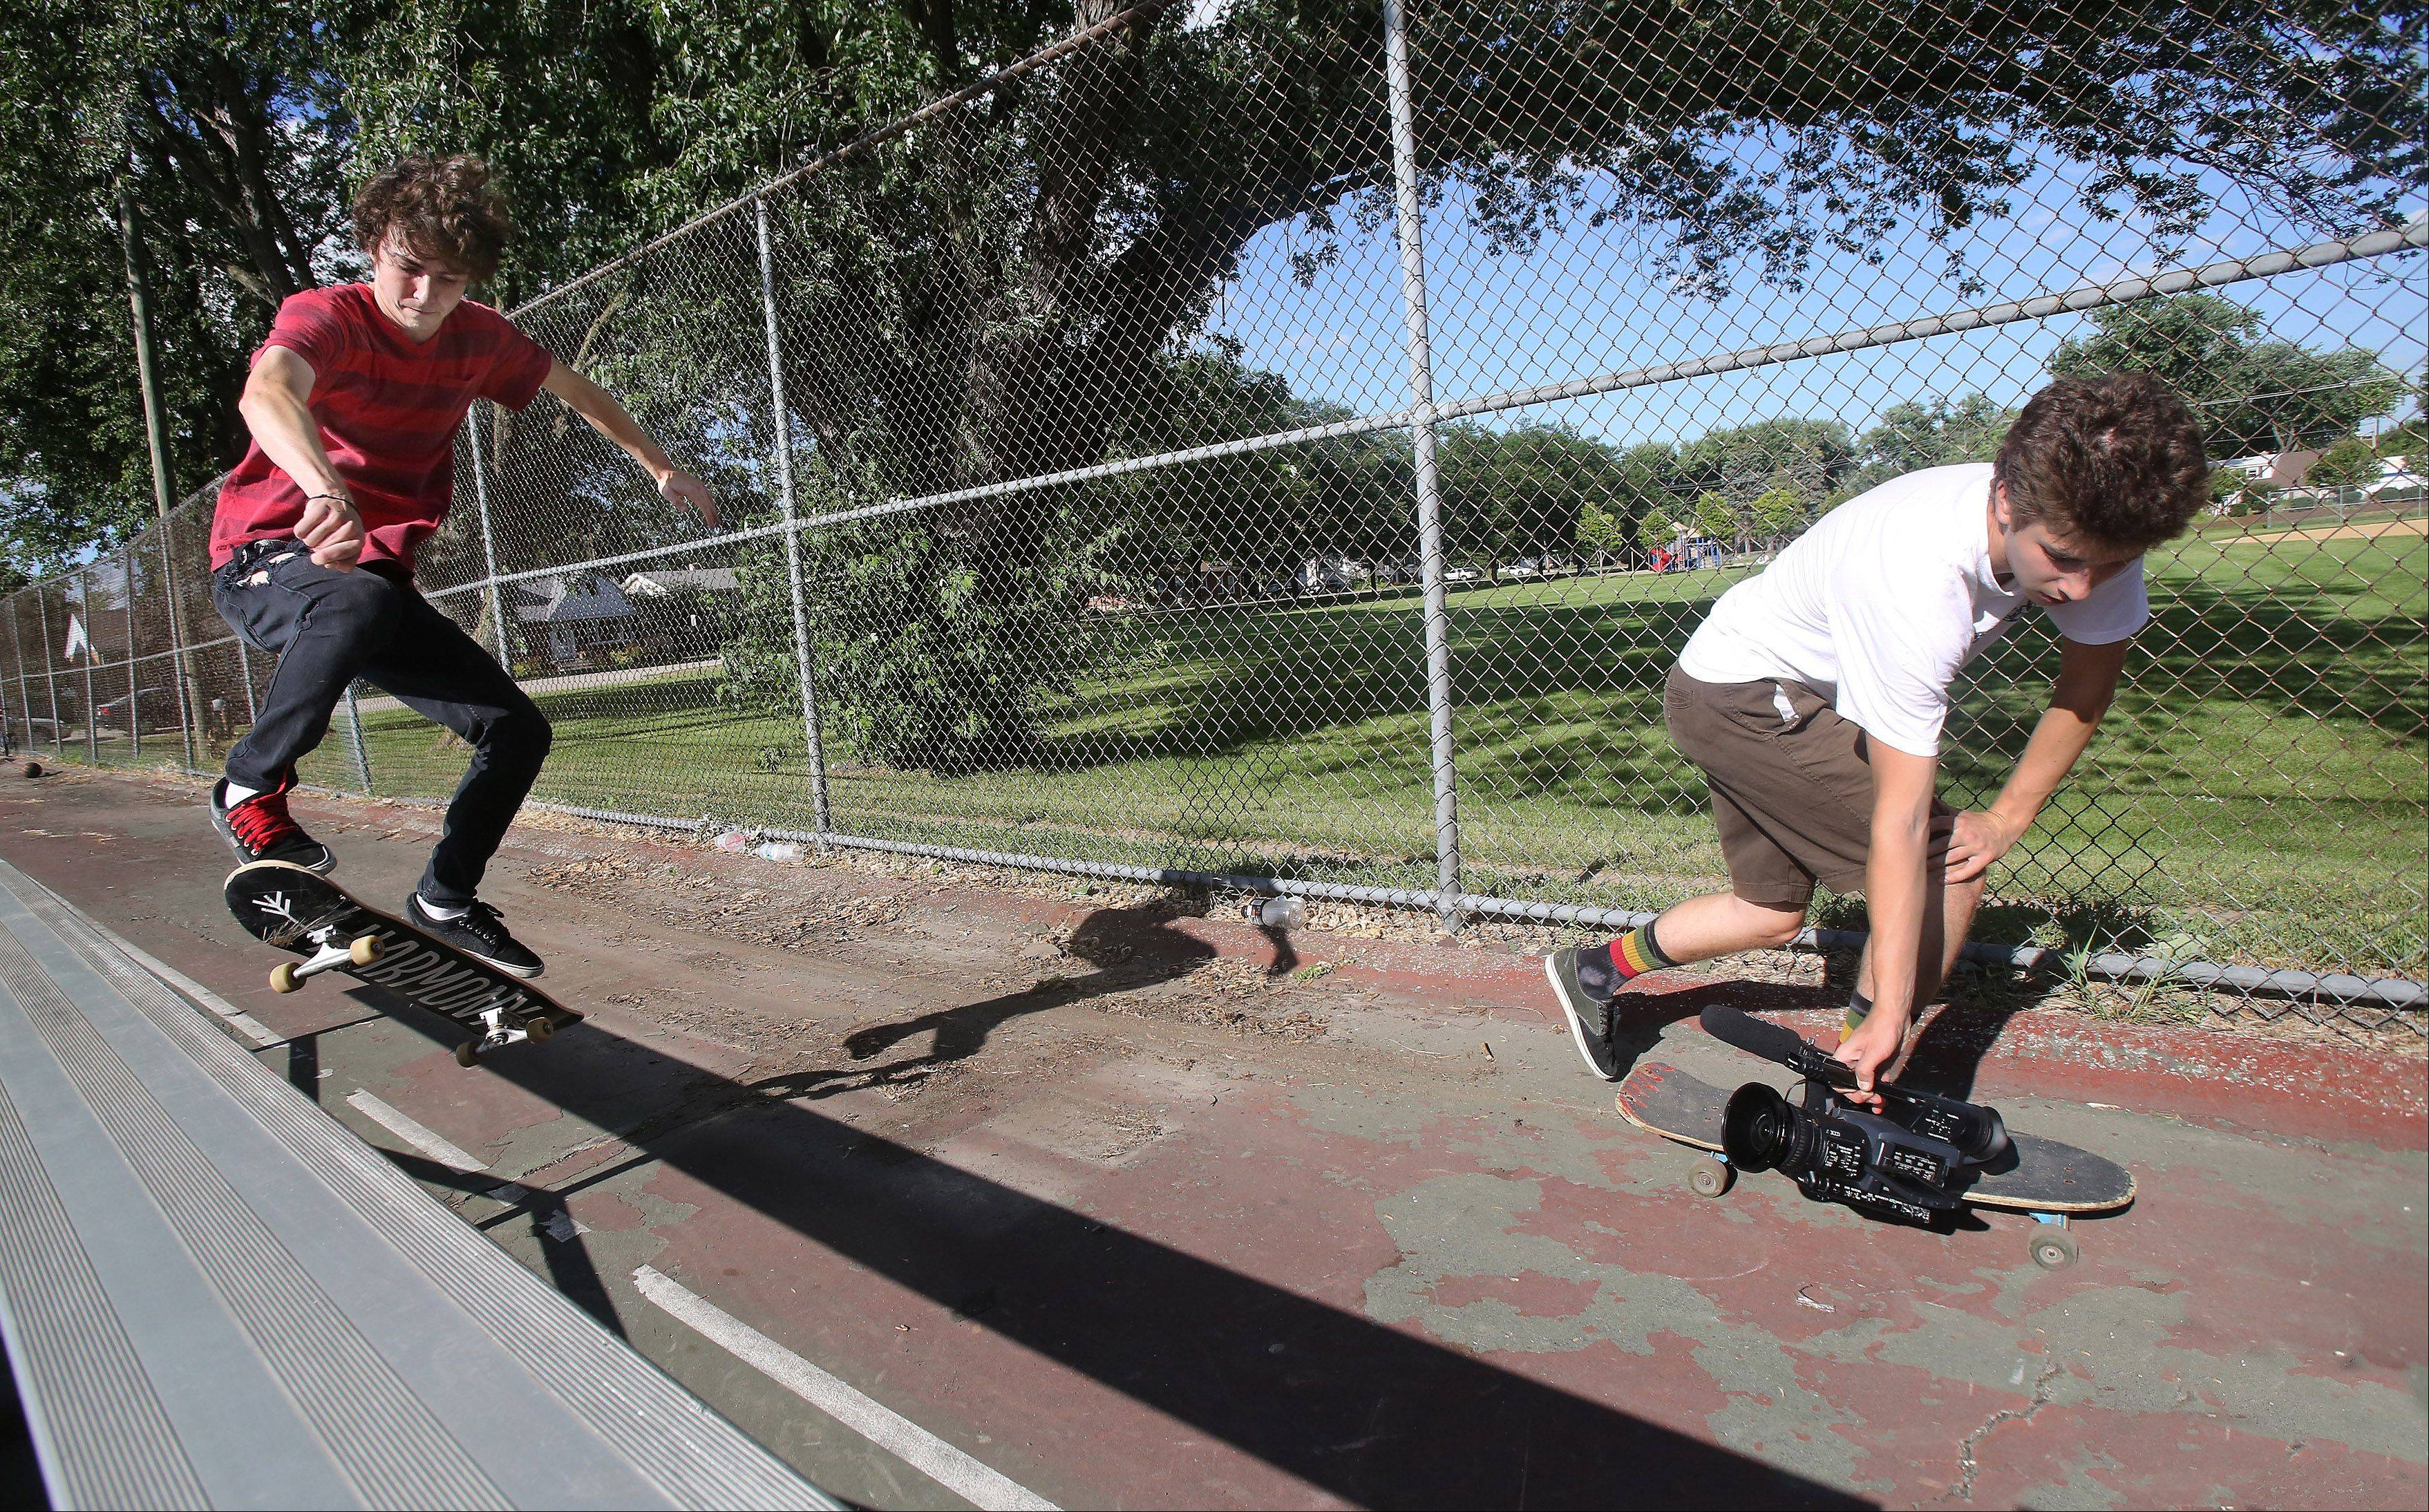 Moving Picture: Libertyville teen films fellow skateboarders